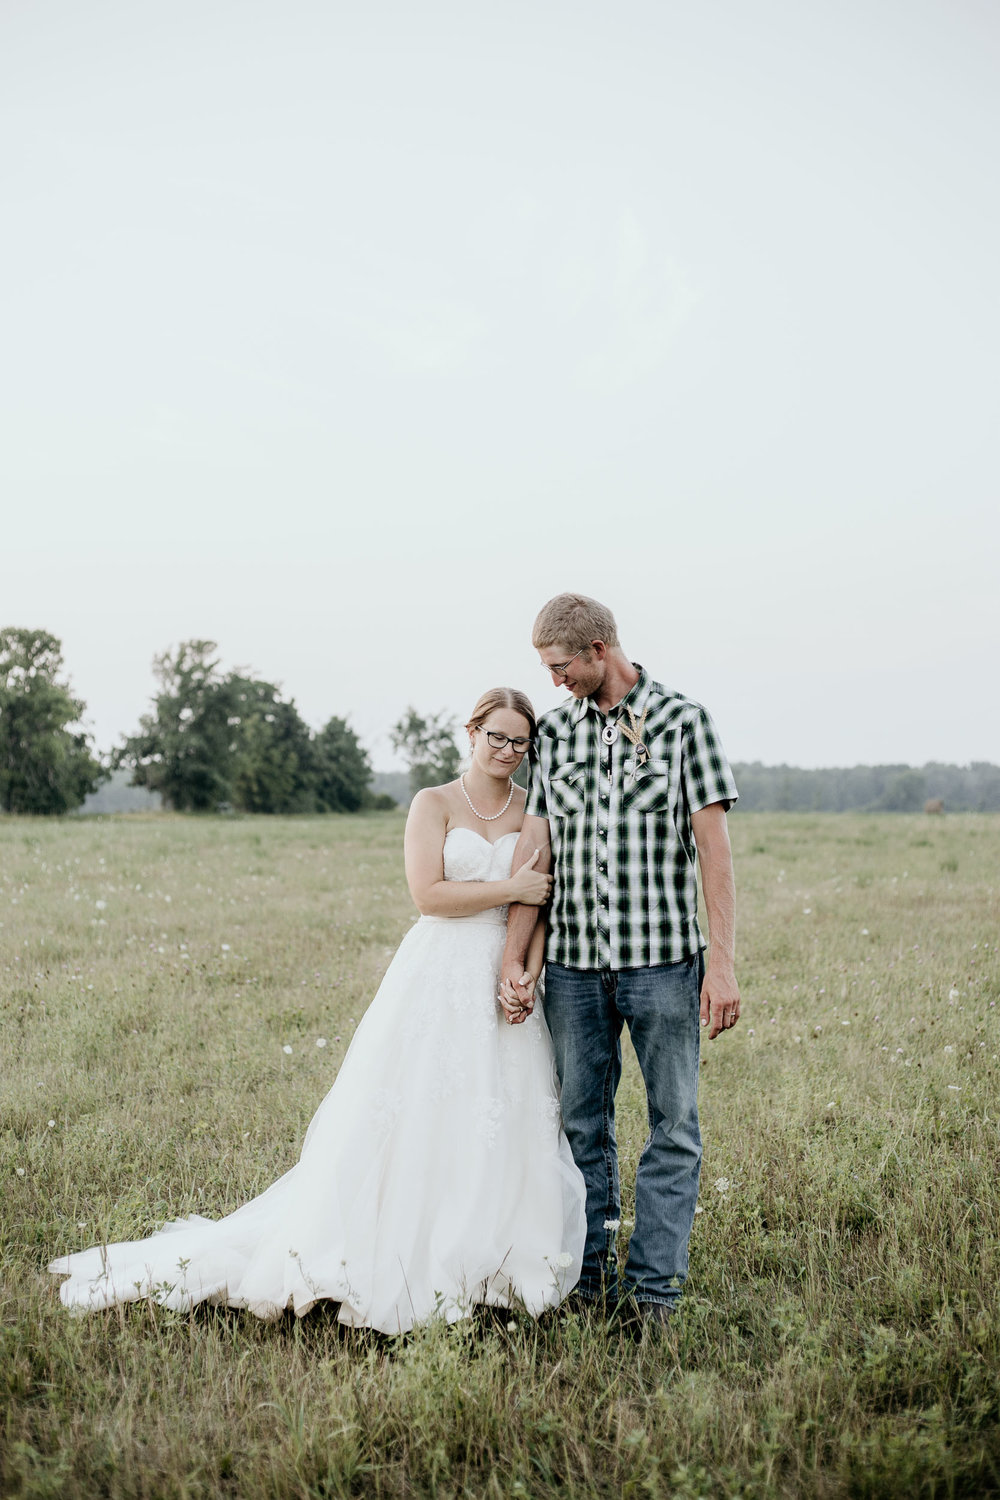 intimate-wedding-elopement-photographer-ottawa-joshua-tree-3201.jpg